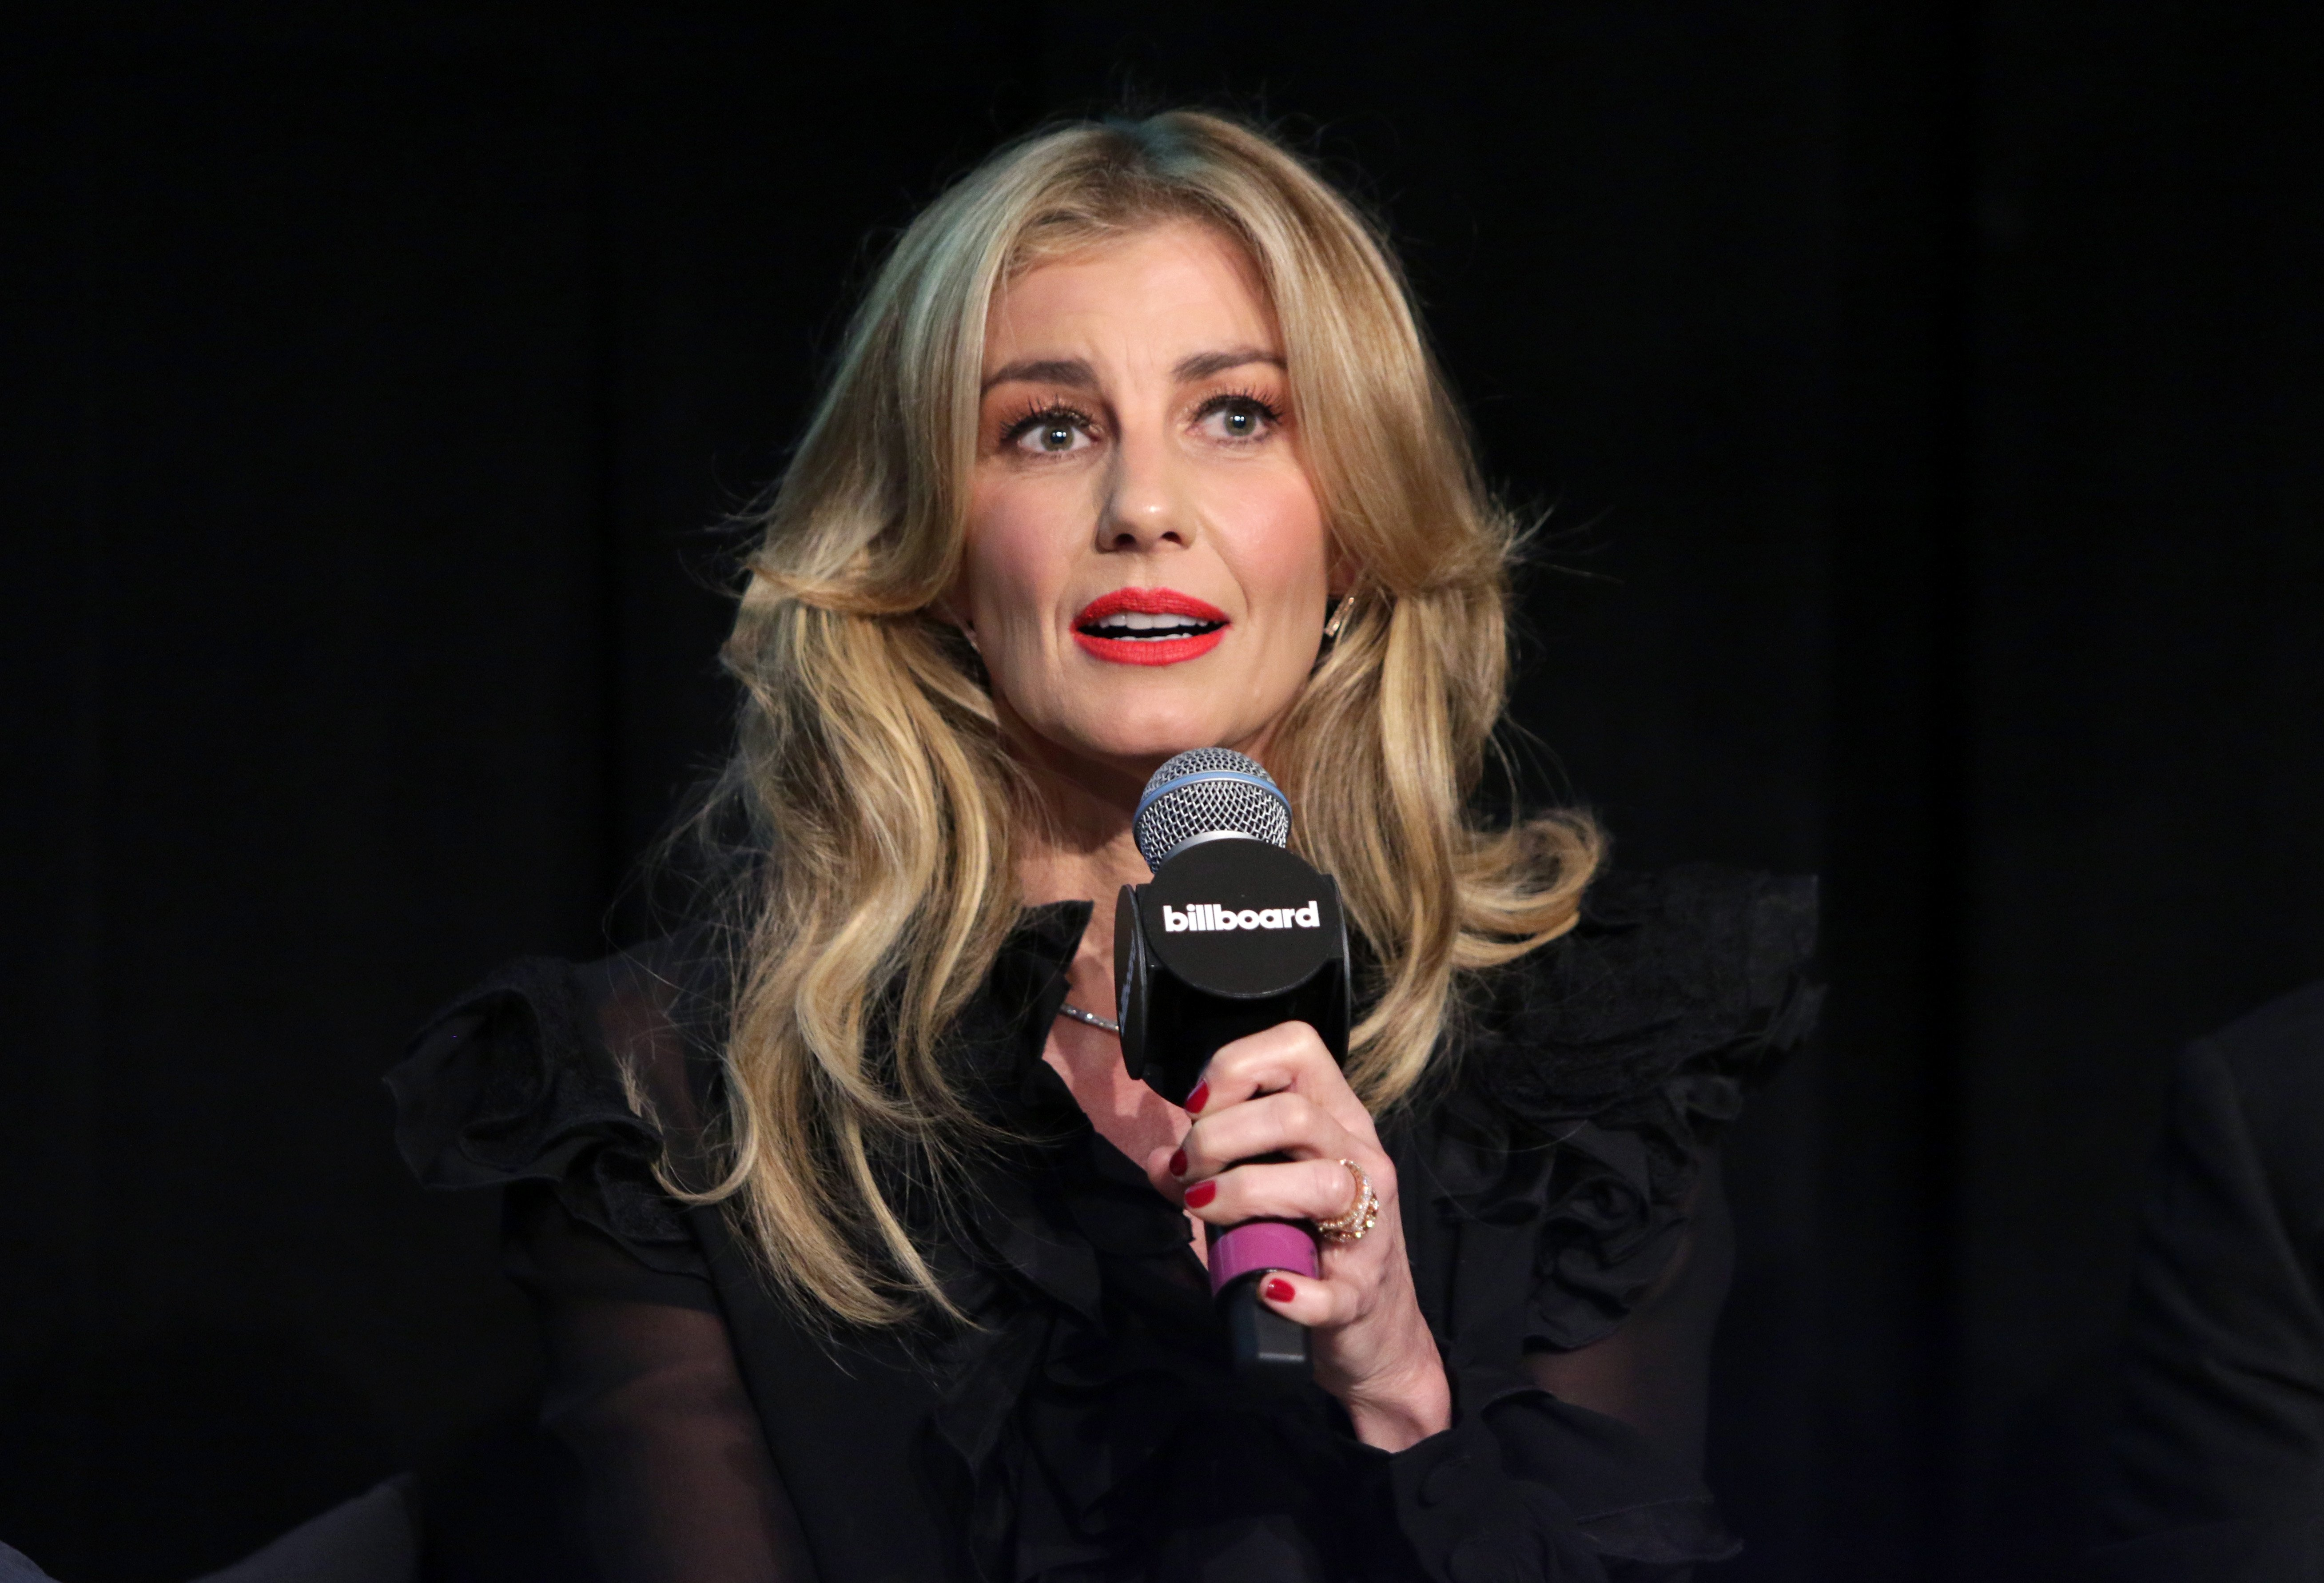 Image Credits: Getty Images / Jerritt Clark | Musician Faith Hill speaks during the Billboard 2017 Touring Conference - Legends Of Live: Tim McGraw And Faith Hill at Montage Beverly Hills on November 14, 2017 in Beverly Hills, California.